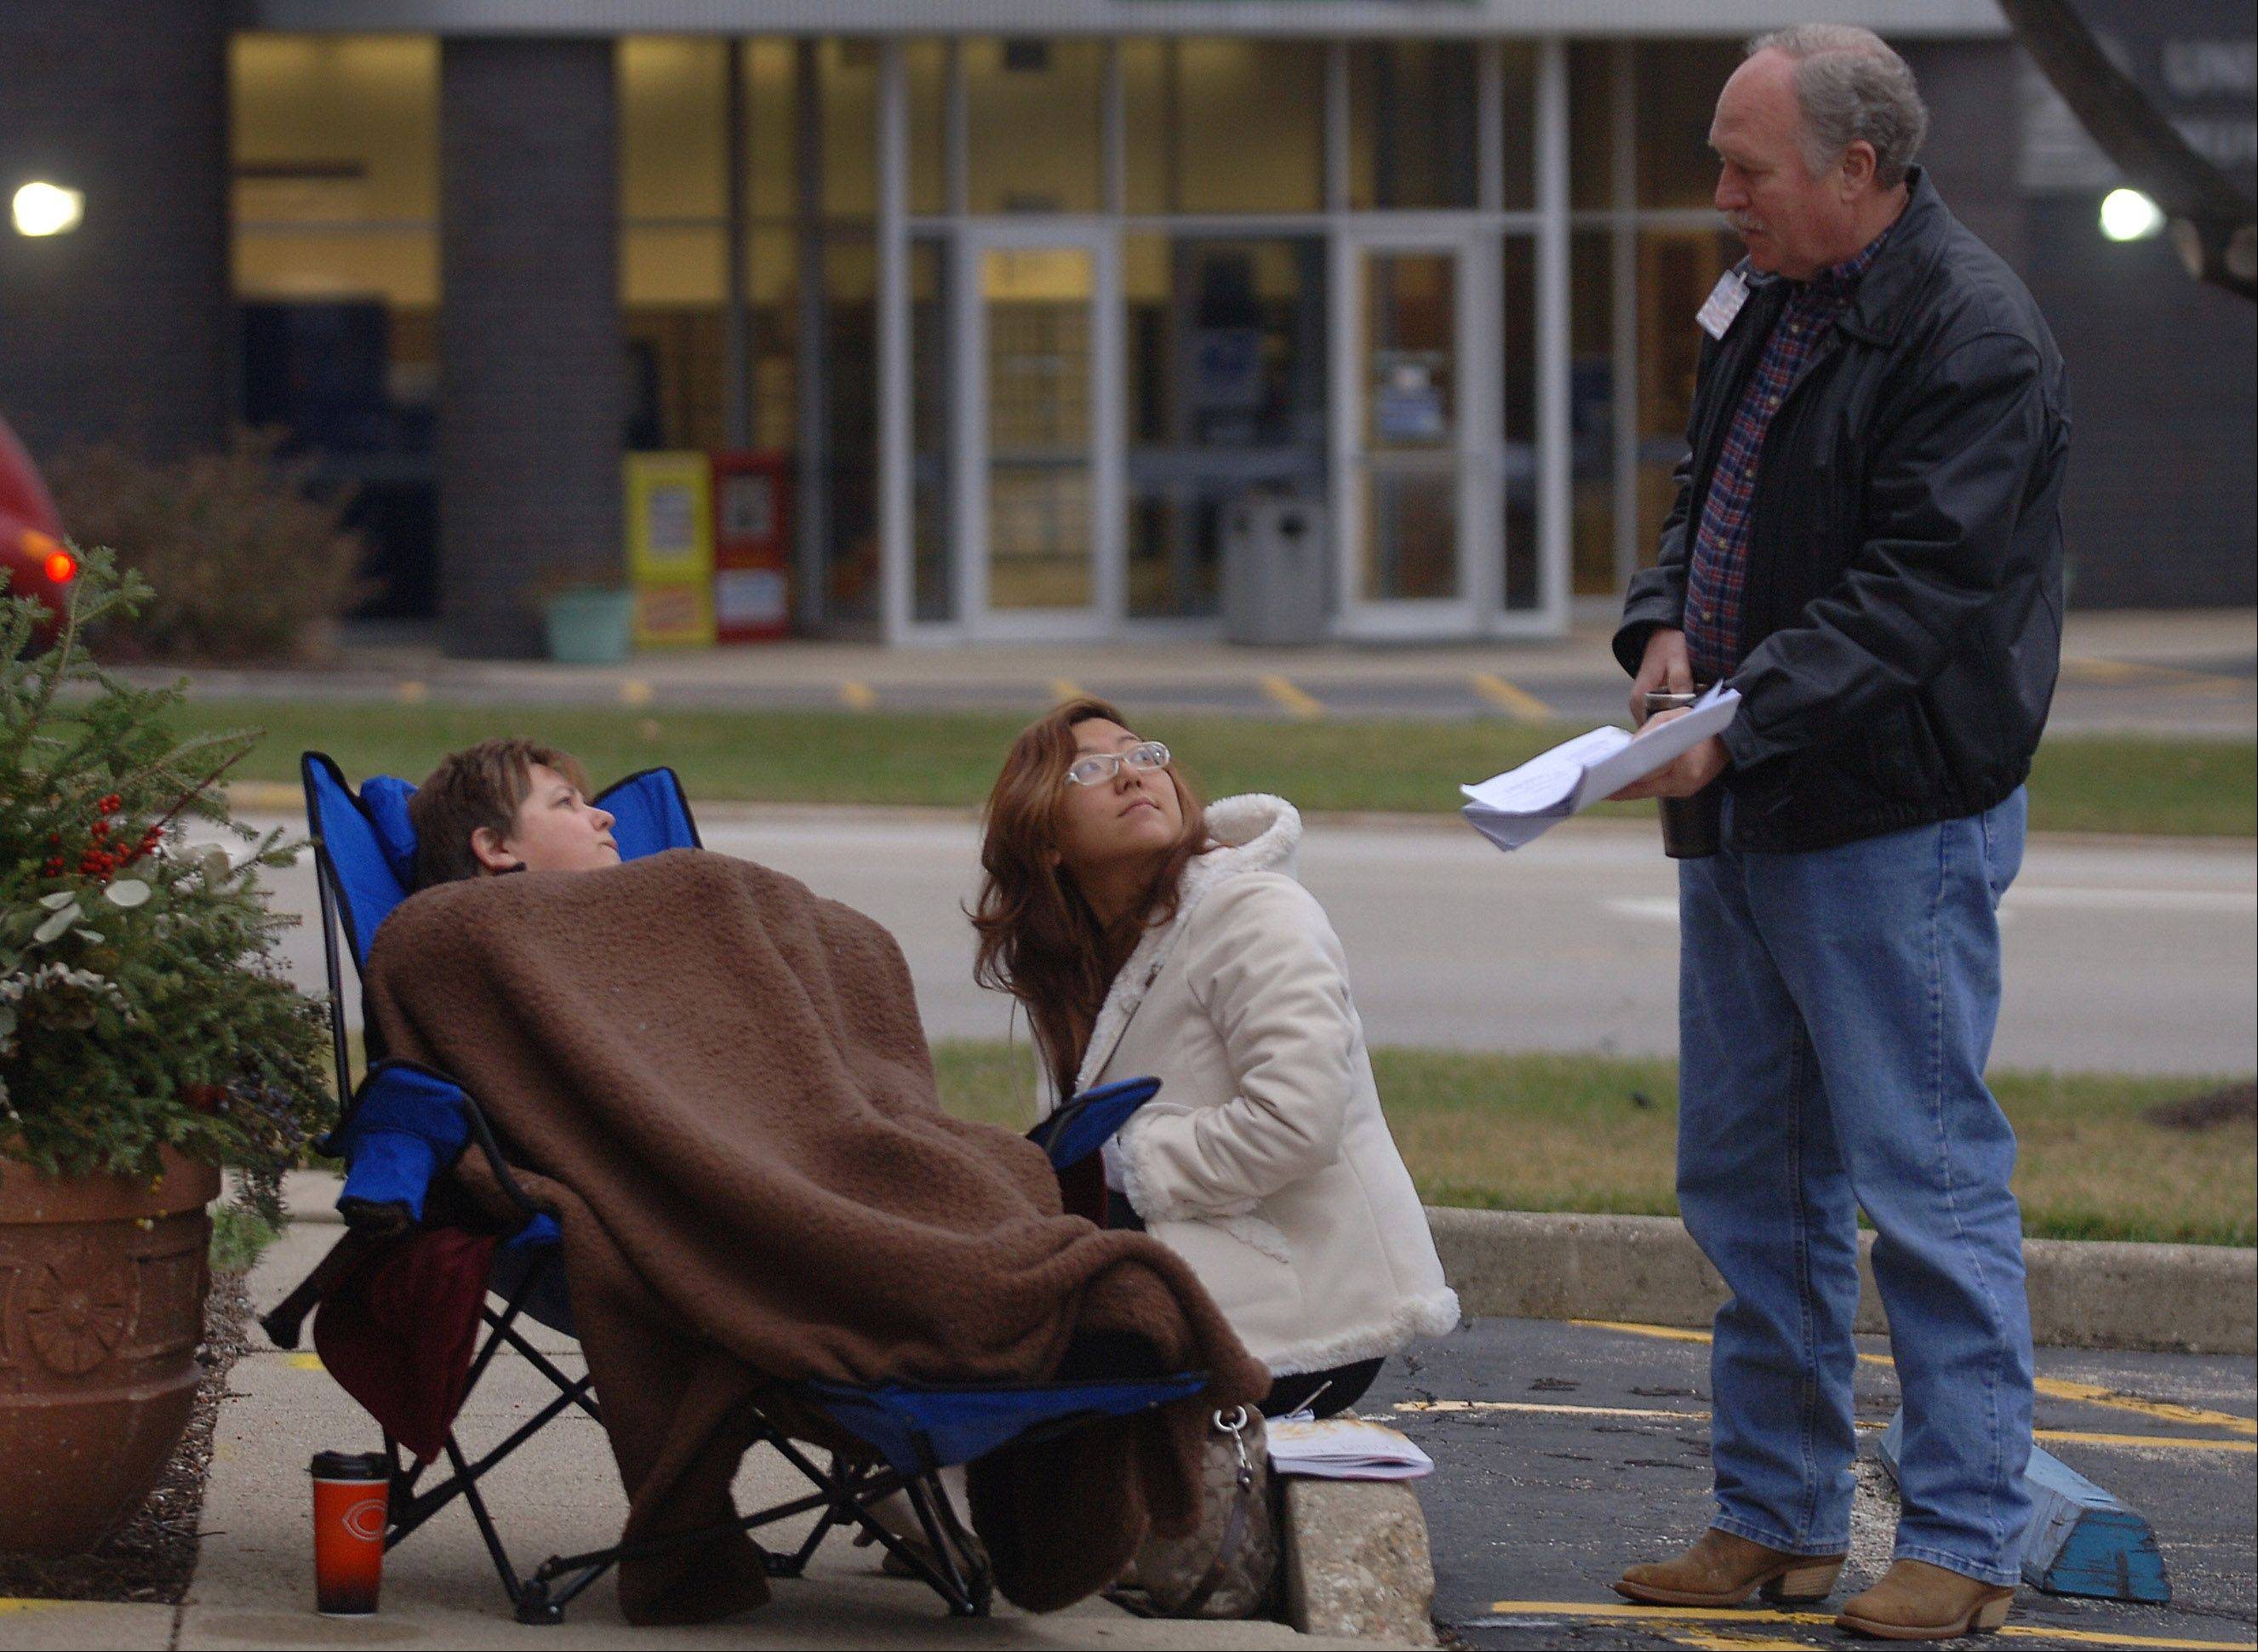 Mundelein trustee candidates Dawn Abernathy, left, and Holly Kim chat with mayor candidate Wally Frasier, right, outside the village hall early Monday morning as they wait for the doors to open to file their papers for the 2013 election. Abernathy arrived around 7 a.m. and kept warm under a blanket.